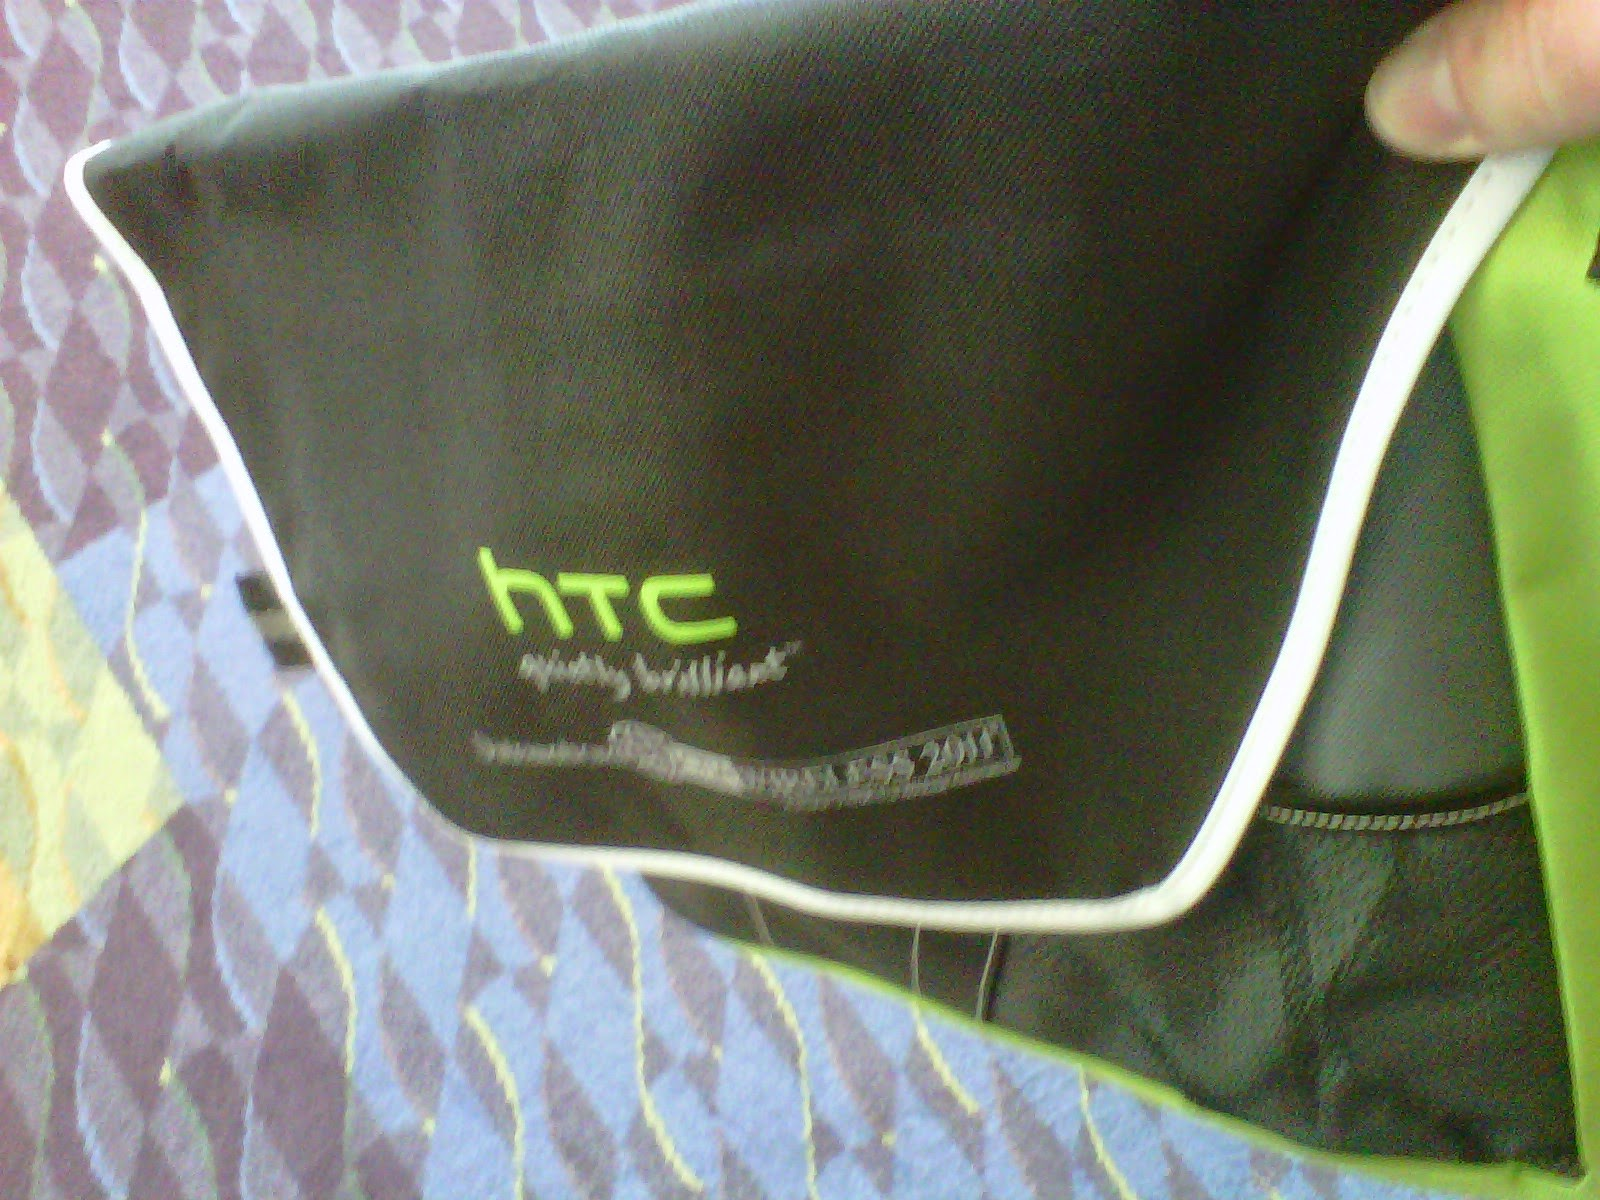 HTC One X, UK supplier, a-stock, used,